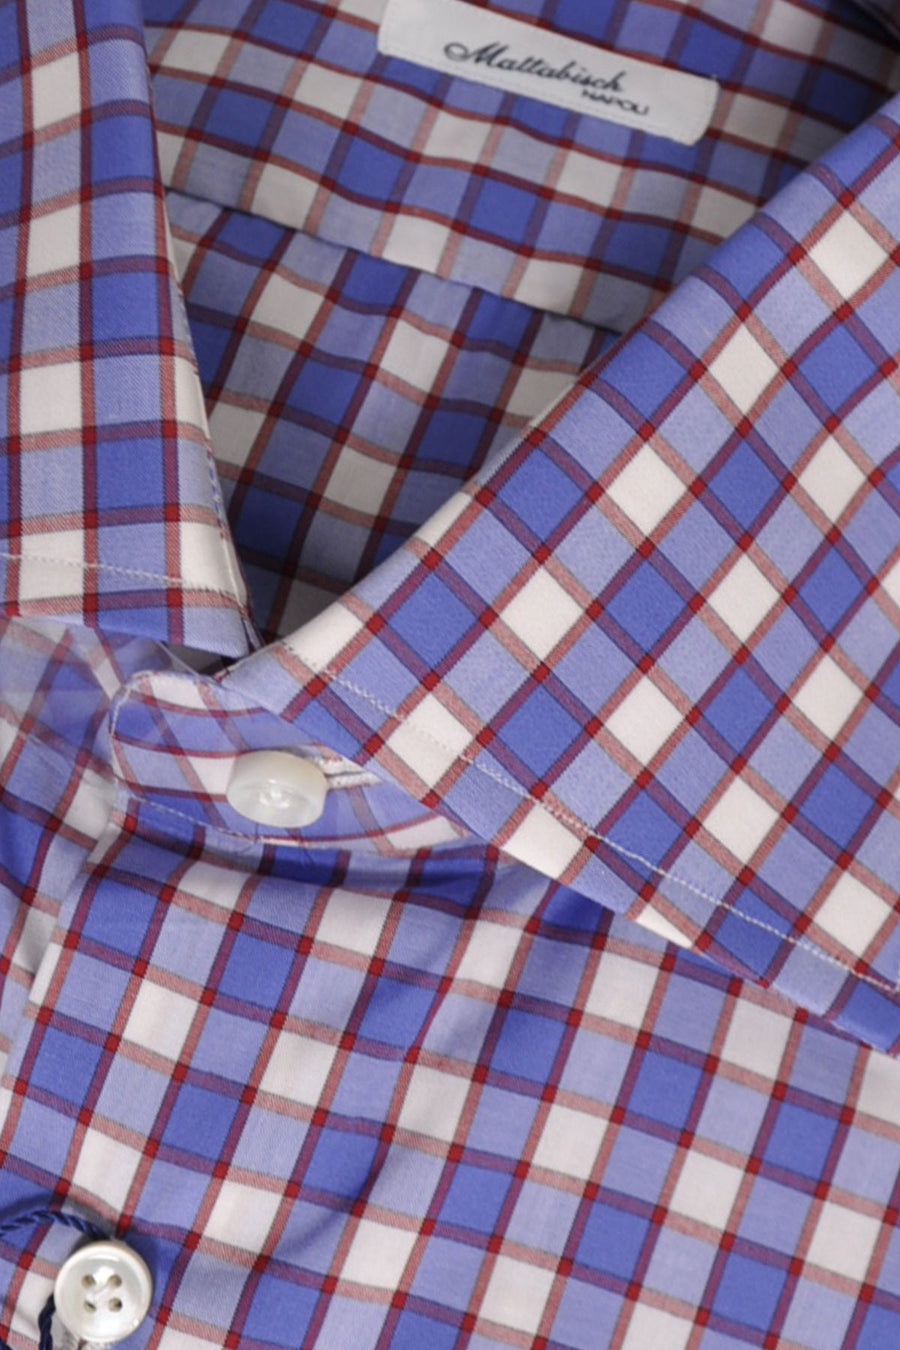 Mattabisch Dress Shirt White Blue Bordeaux Check 40 - 15 3/4 SALE